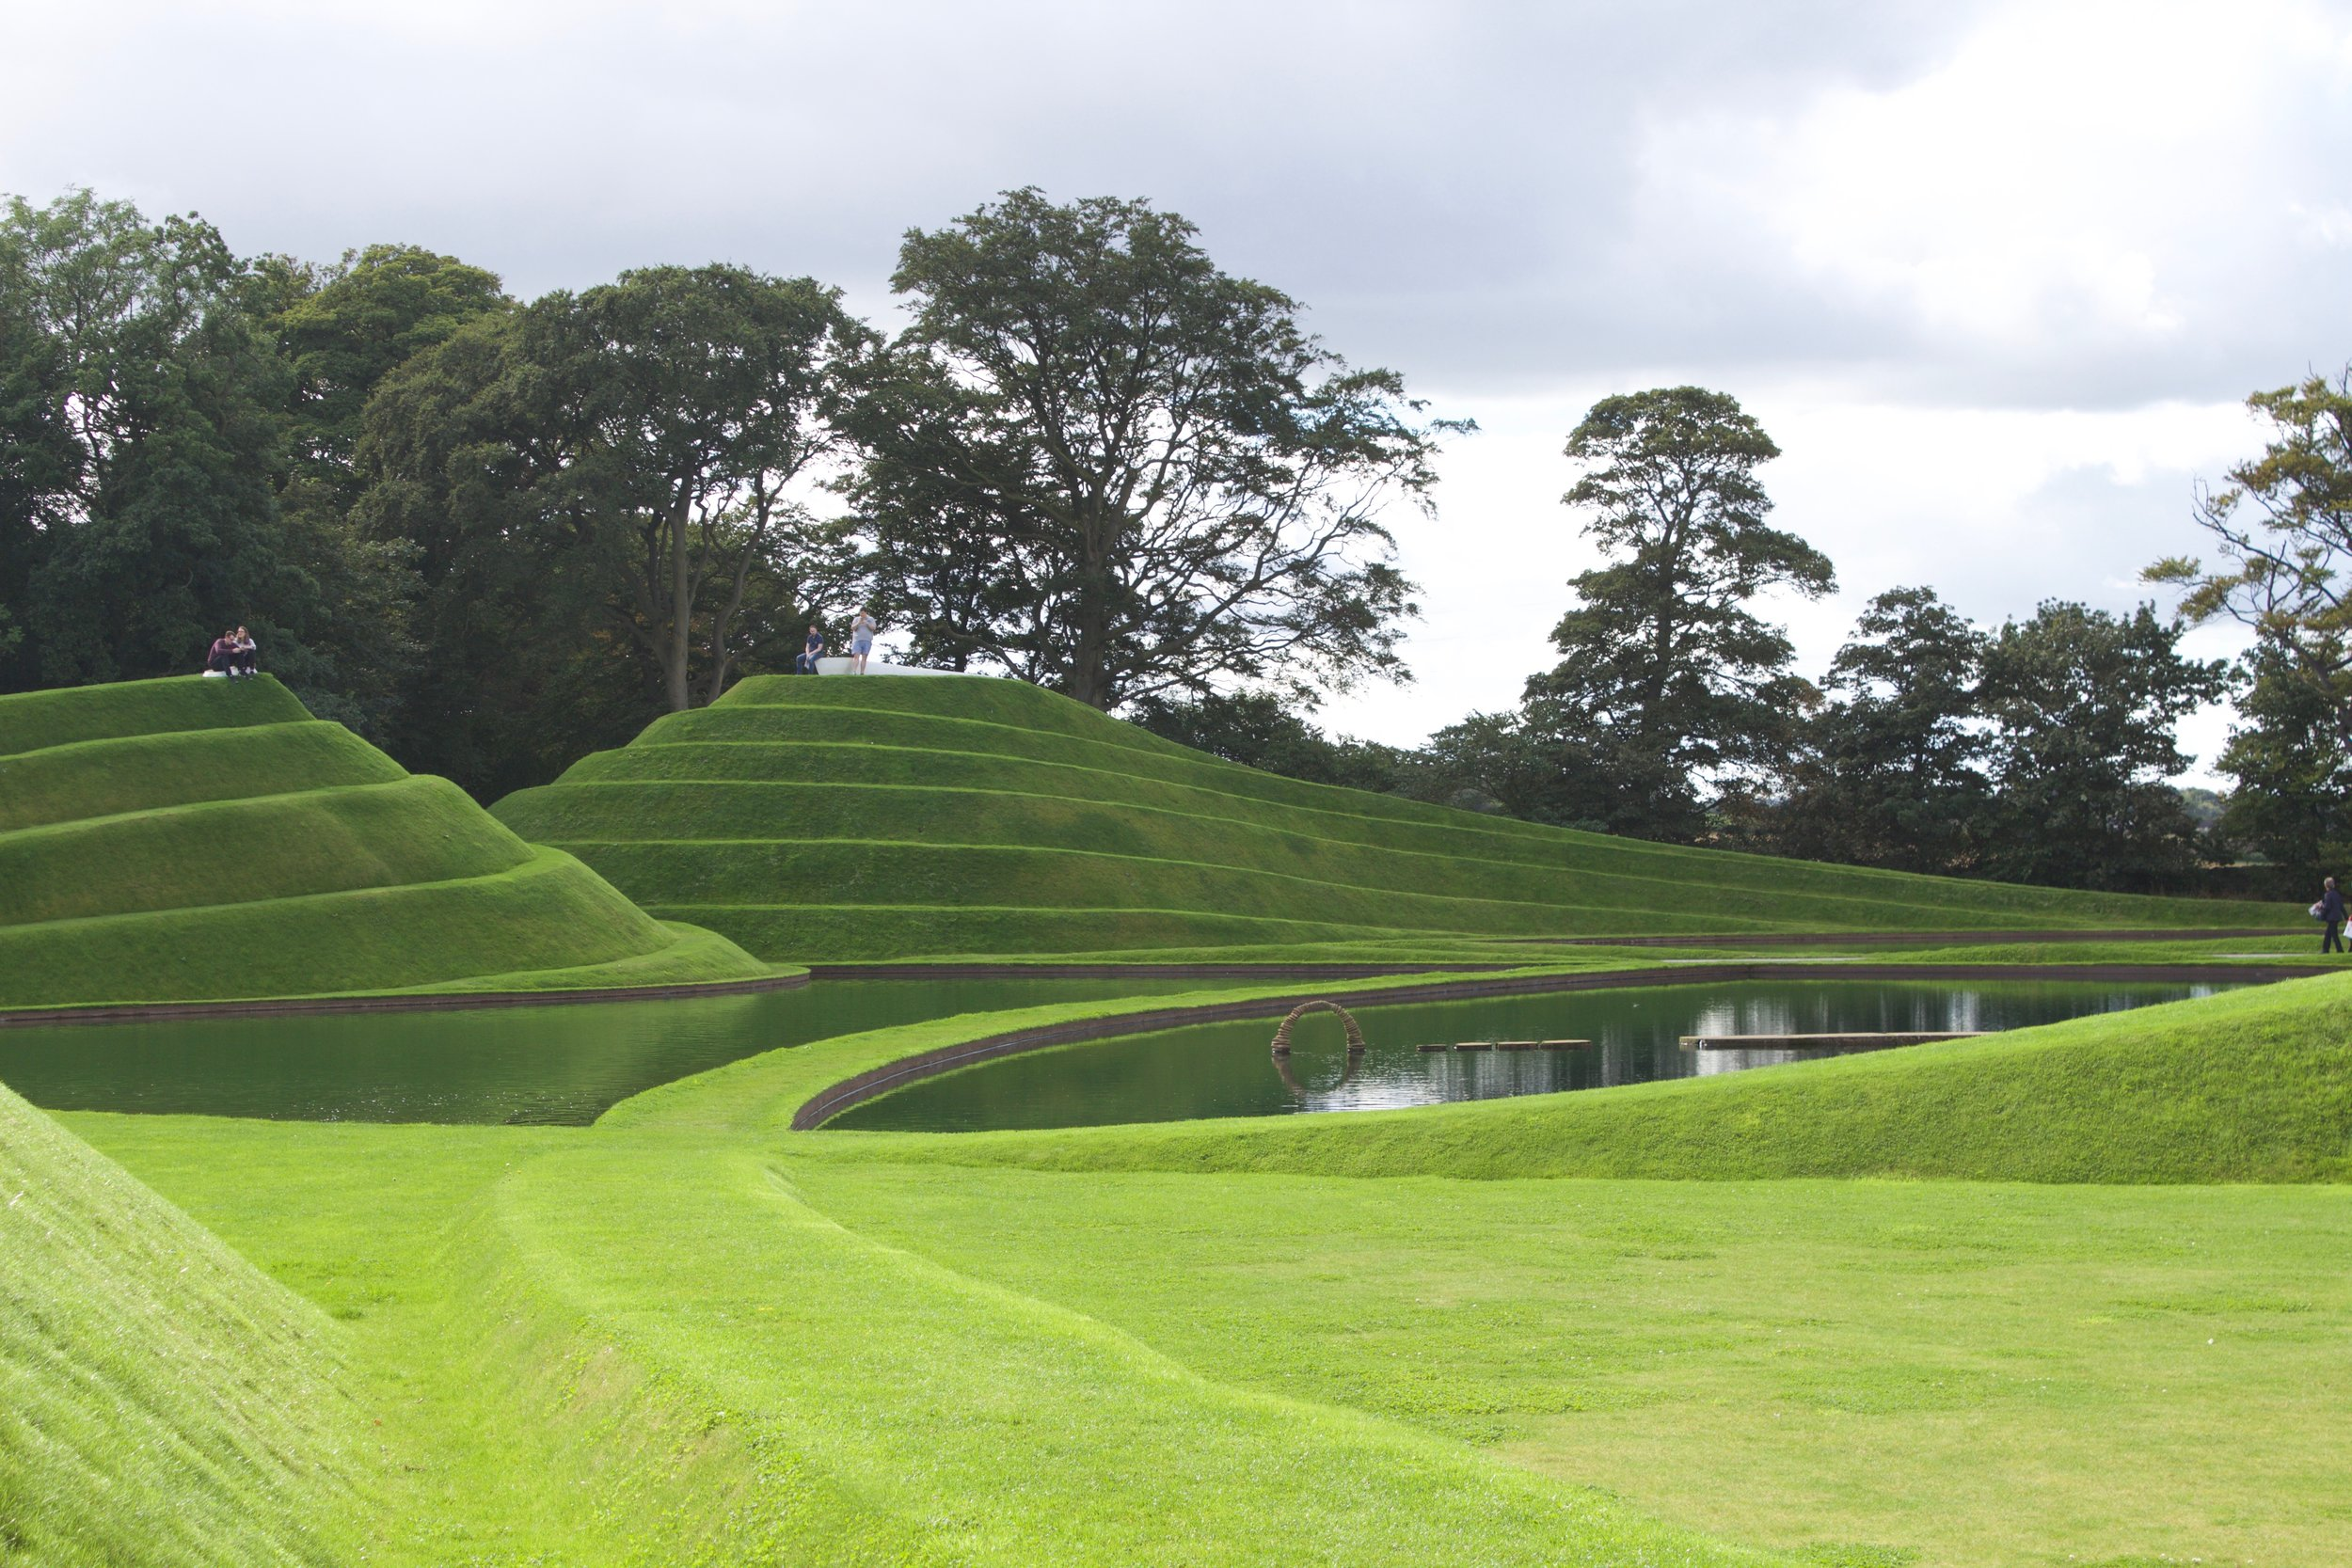 """Life mounds by Charles Jencks (made from earth) """"A landform celebration of the cell as the basis of life"""" - CJ"""